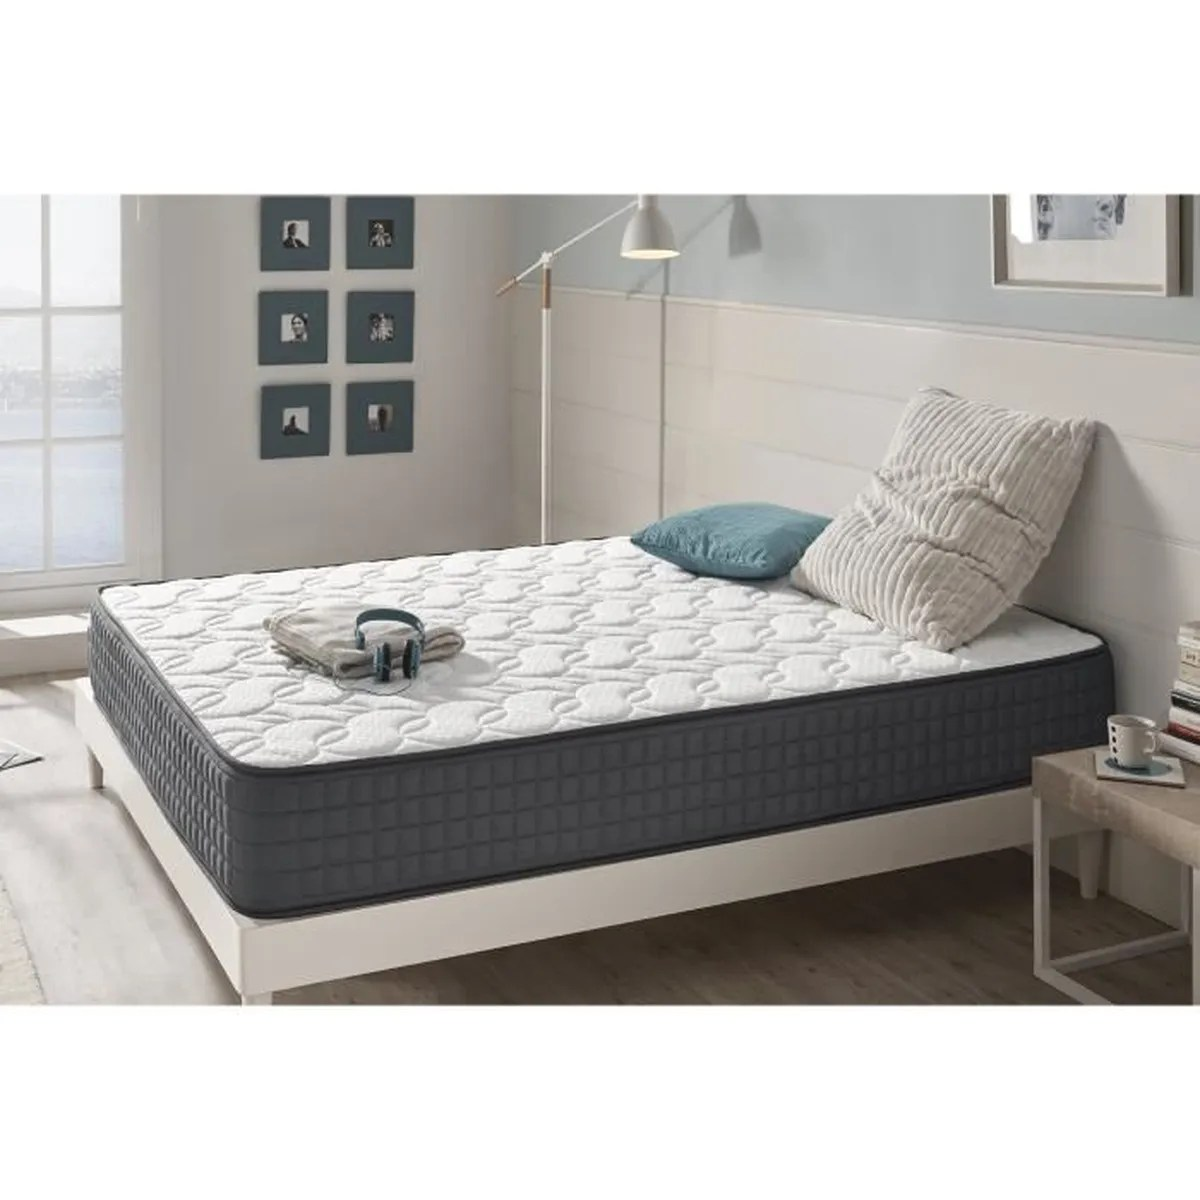 Matelas Latex Memoire De Forme 160x200 Matelas En Mousse Hr Effect Mémoire Visco-graphene 140x190